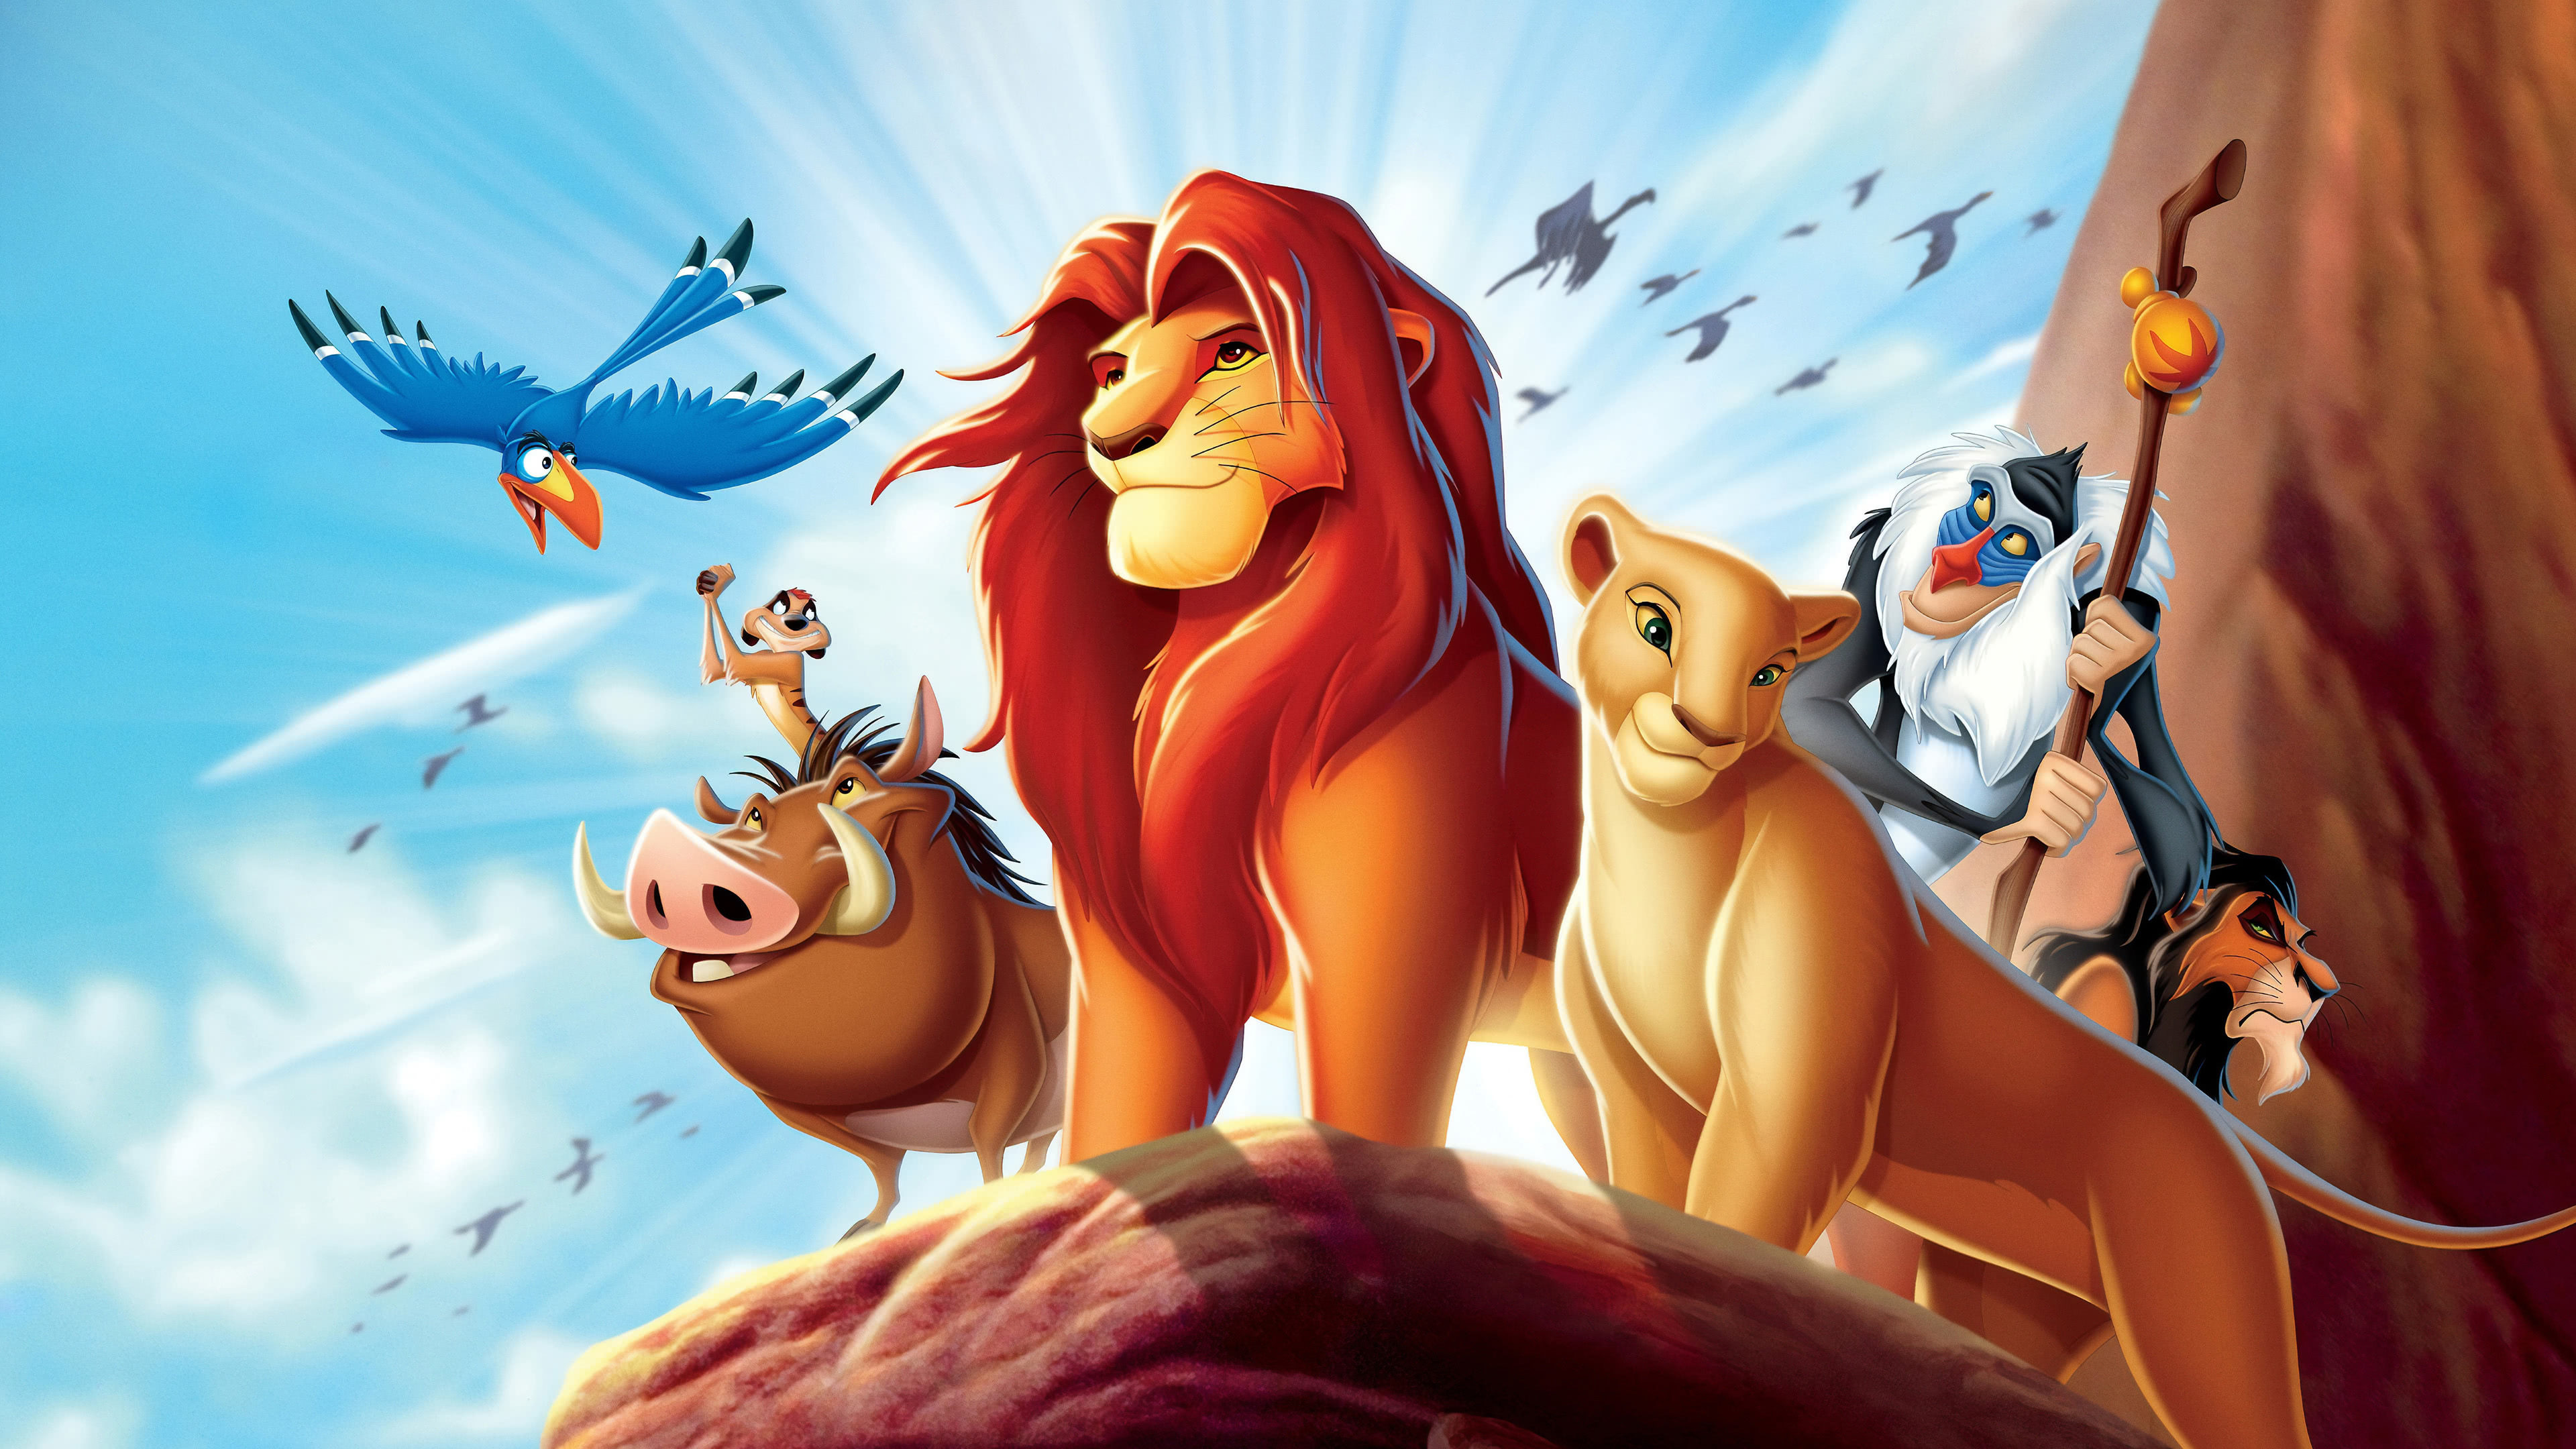 Categories Disney S Lion King 1521857 Hd Wallpaper Backgrounds Download